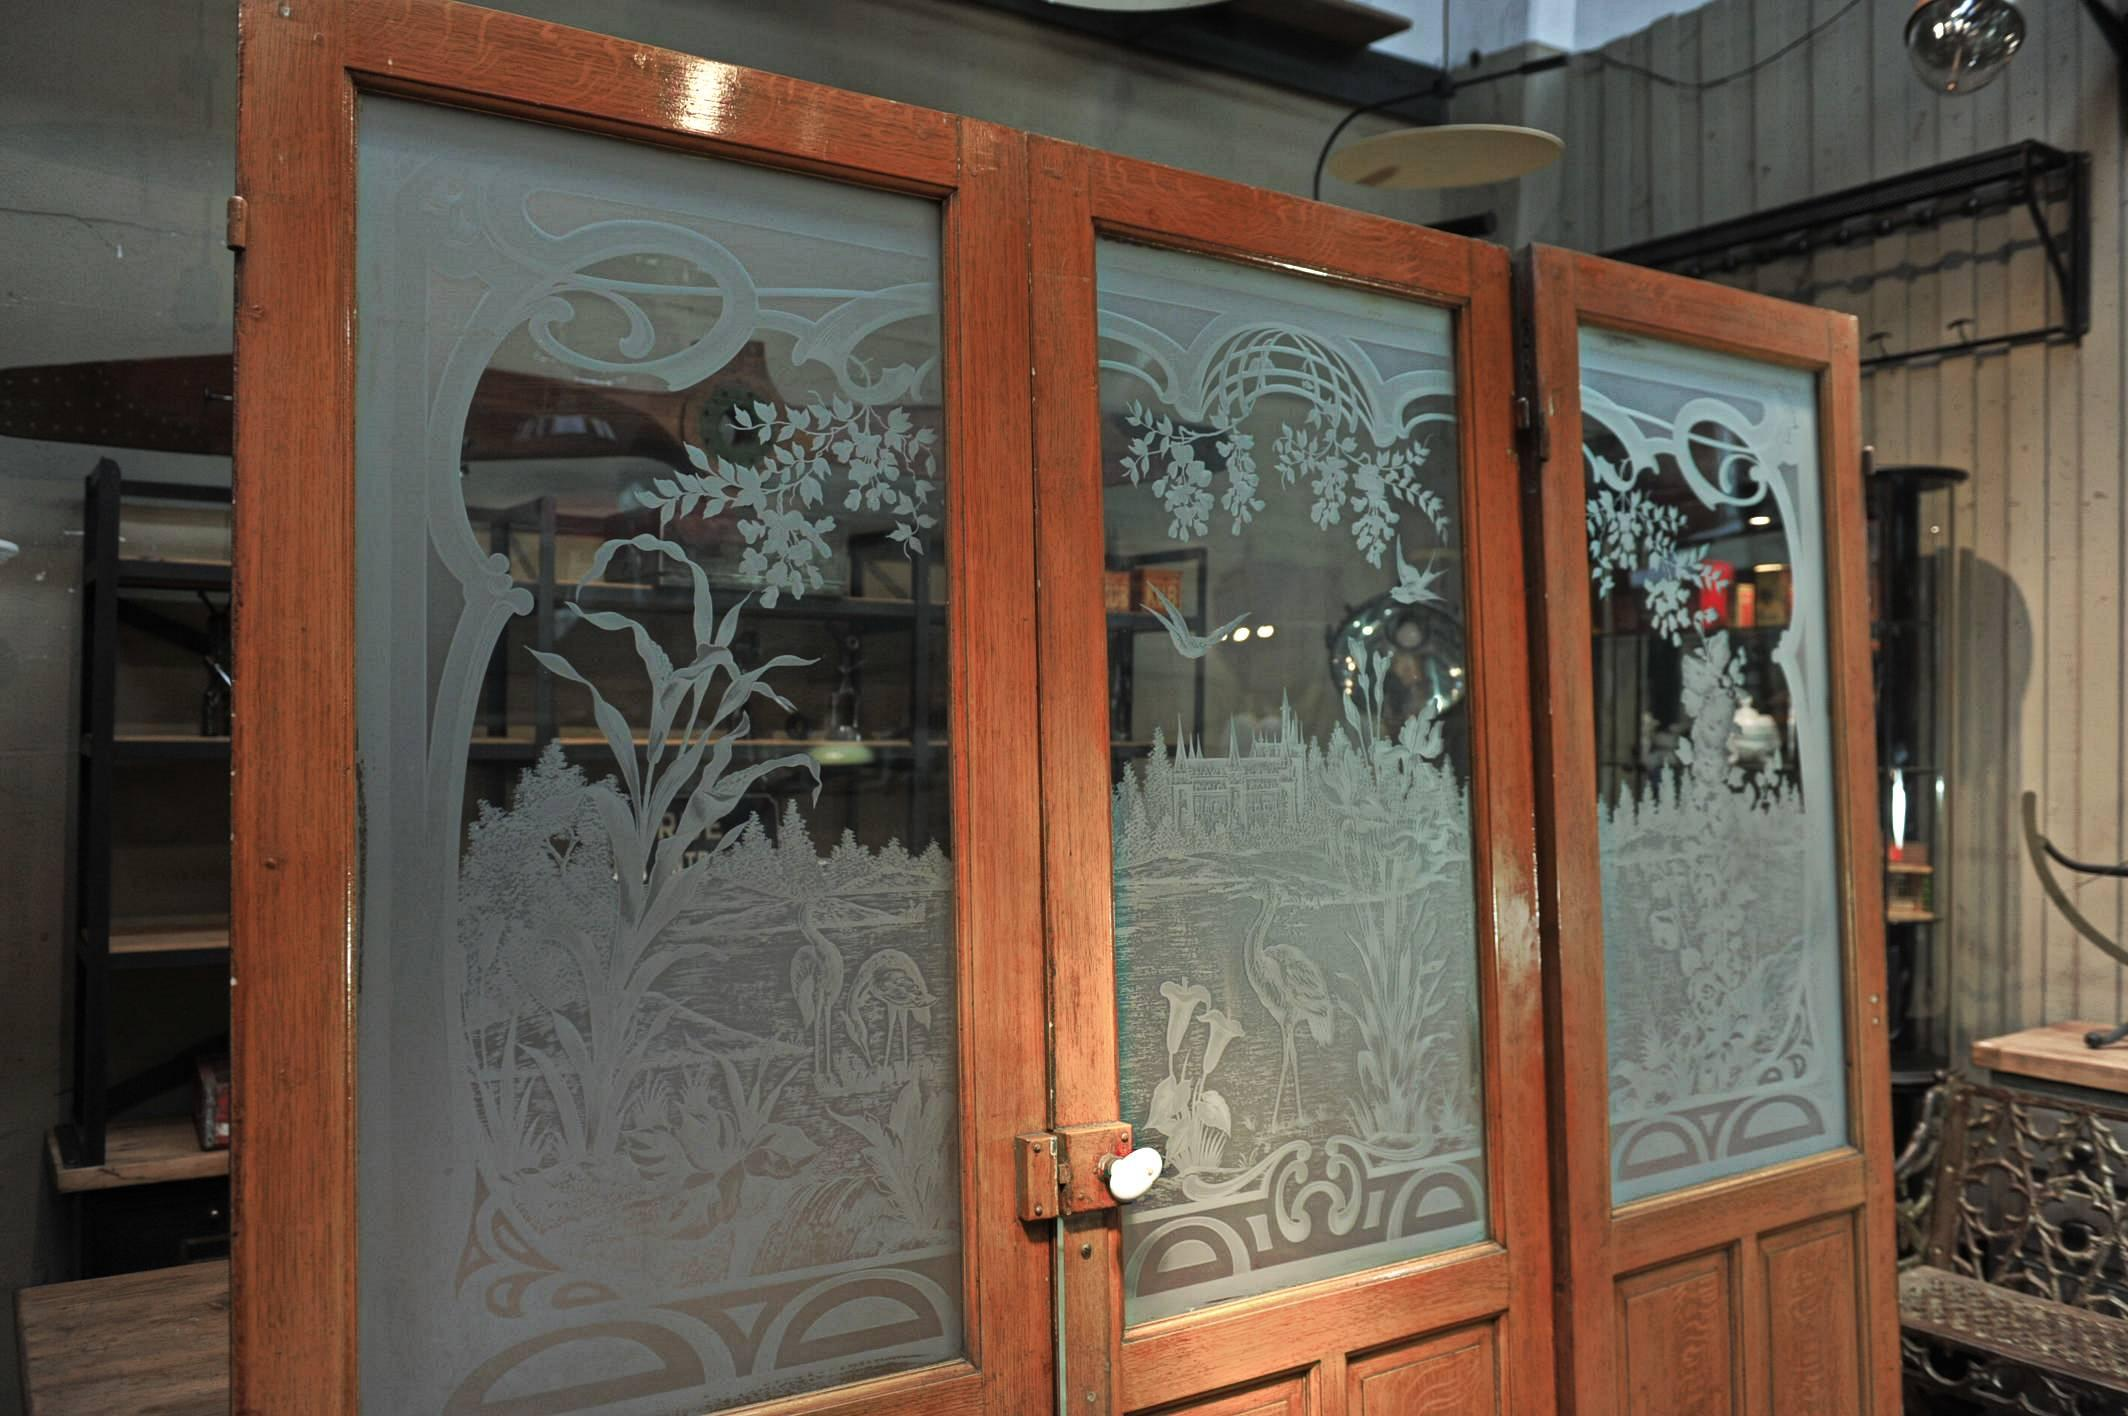 Attirant Early 20th Century Set Of Three French Art Nouveau Craved Glass Inside Doors,  Circa 1900